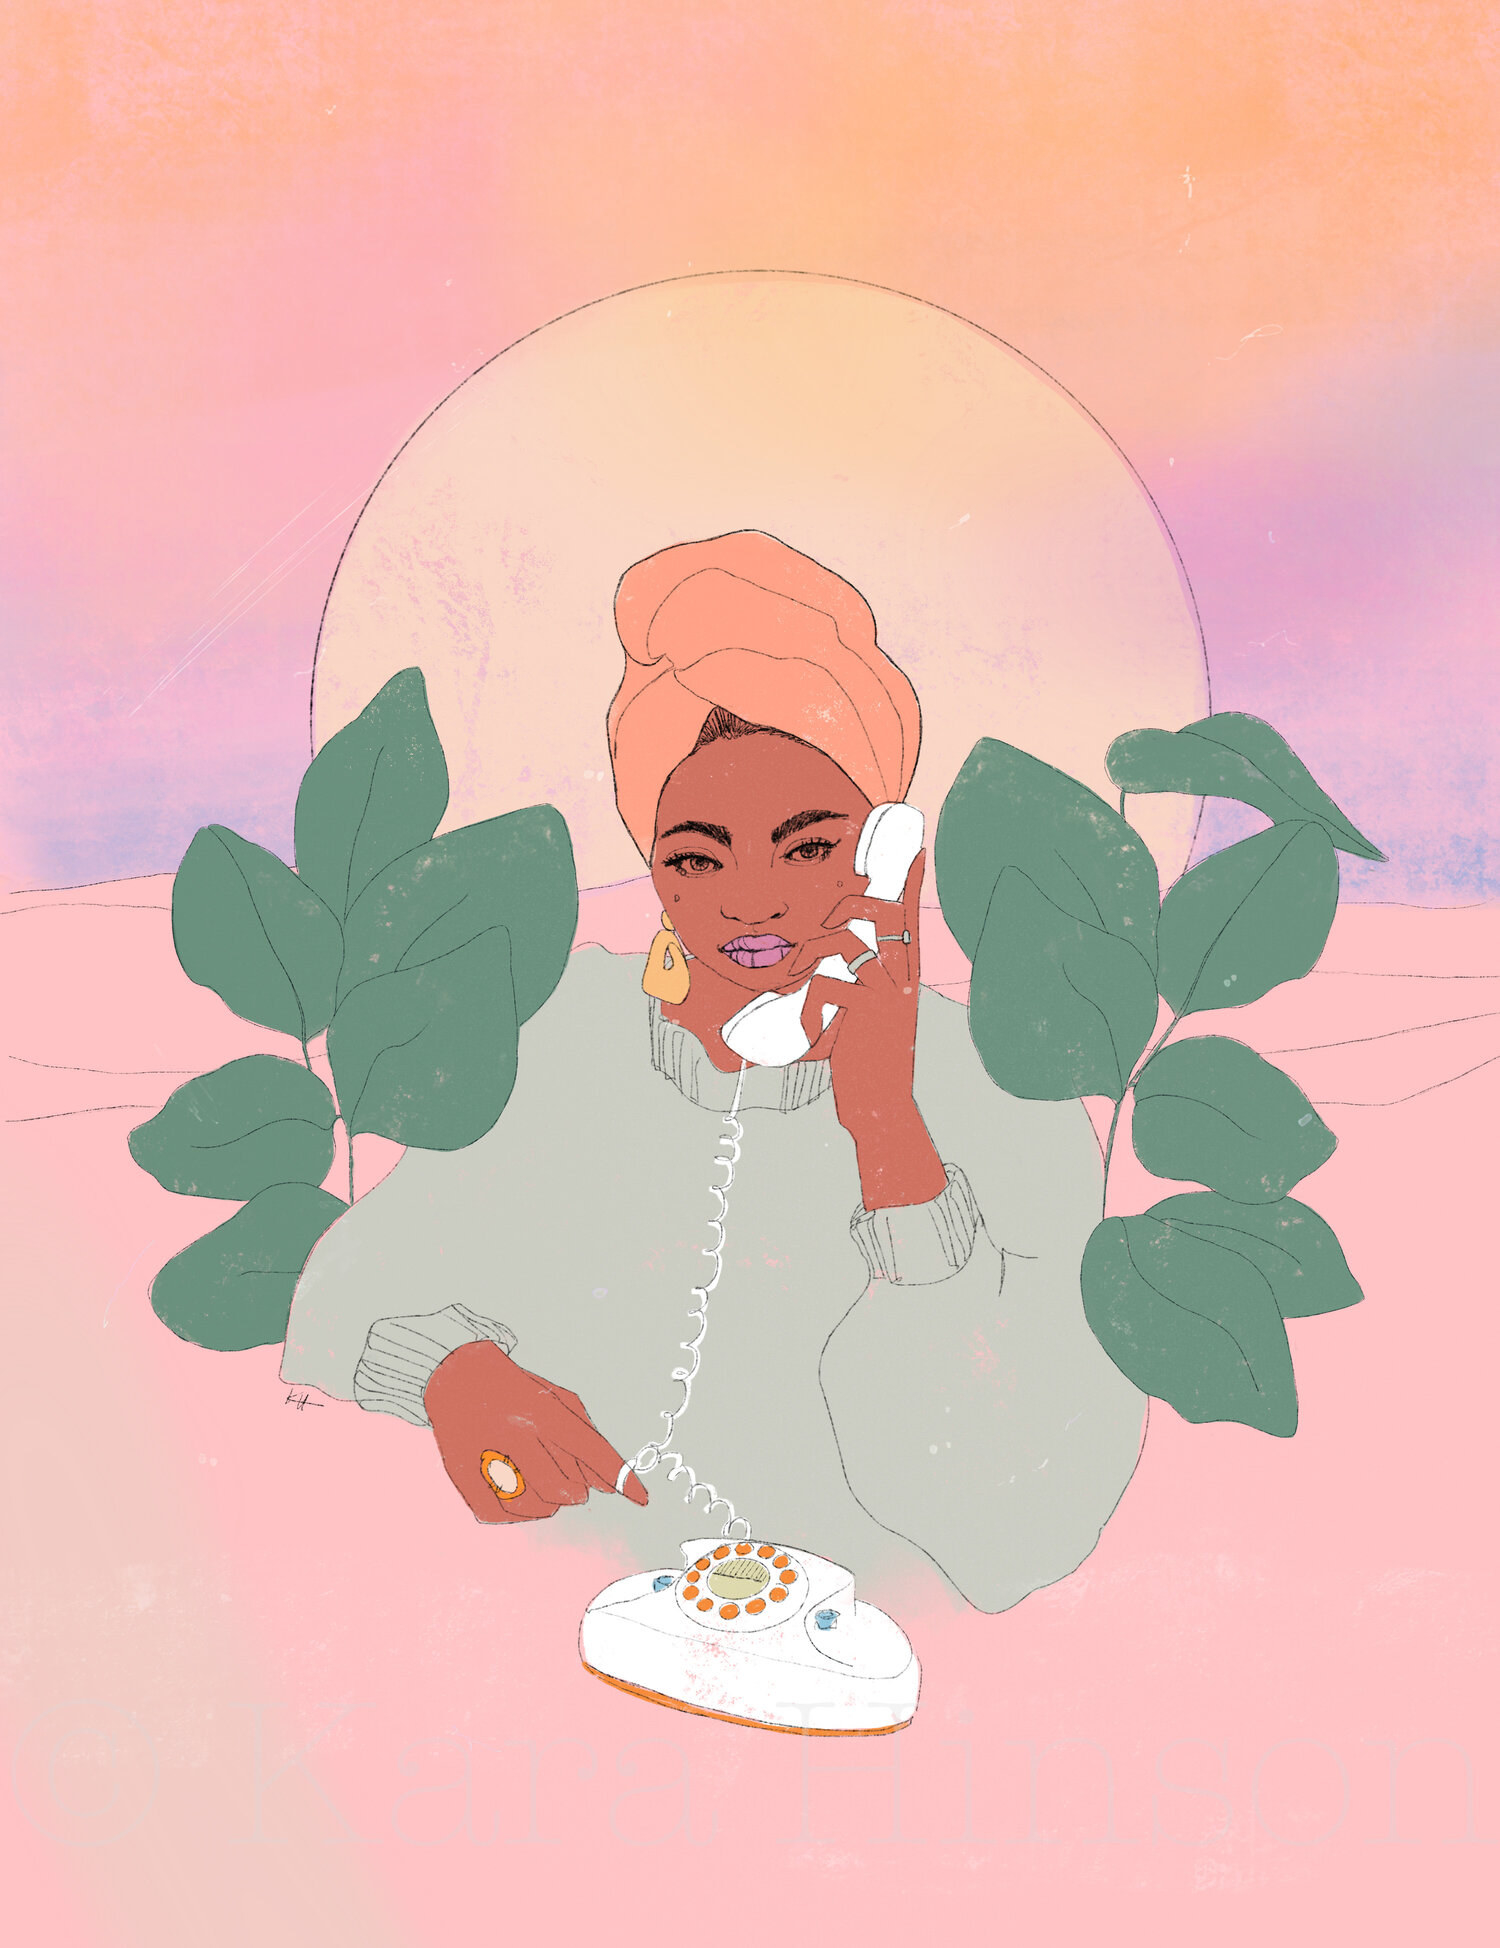 A print of a glamorous woman holding a dial-up telephone to her ear